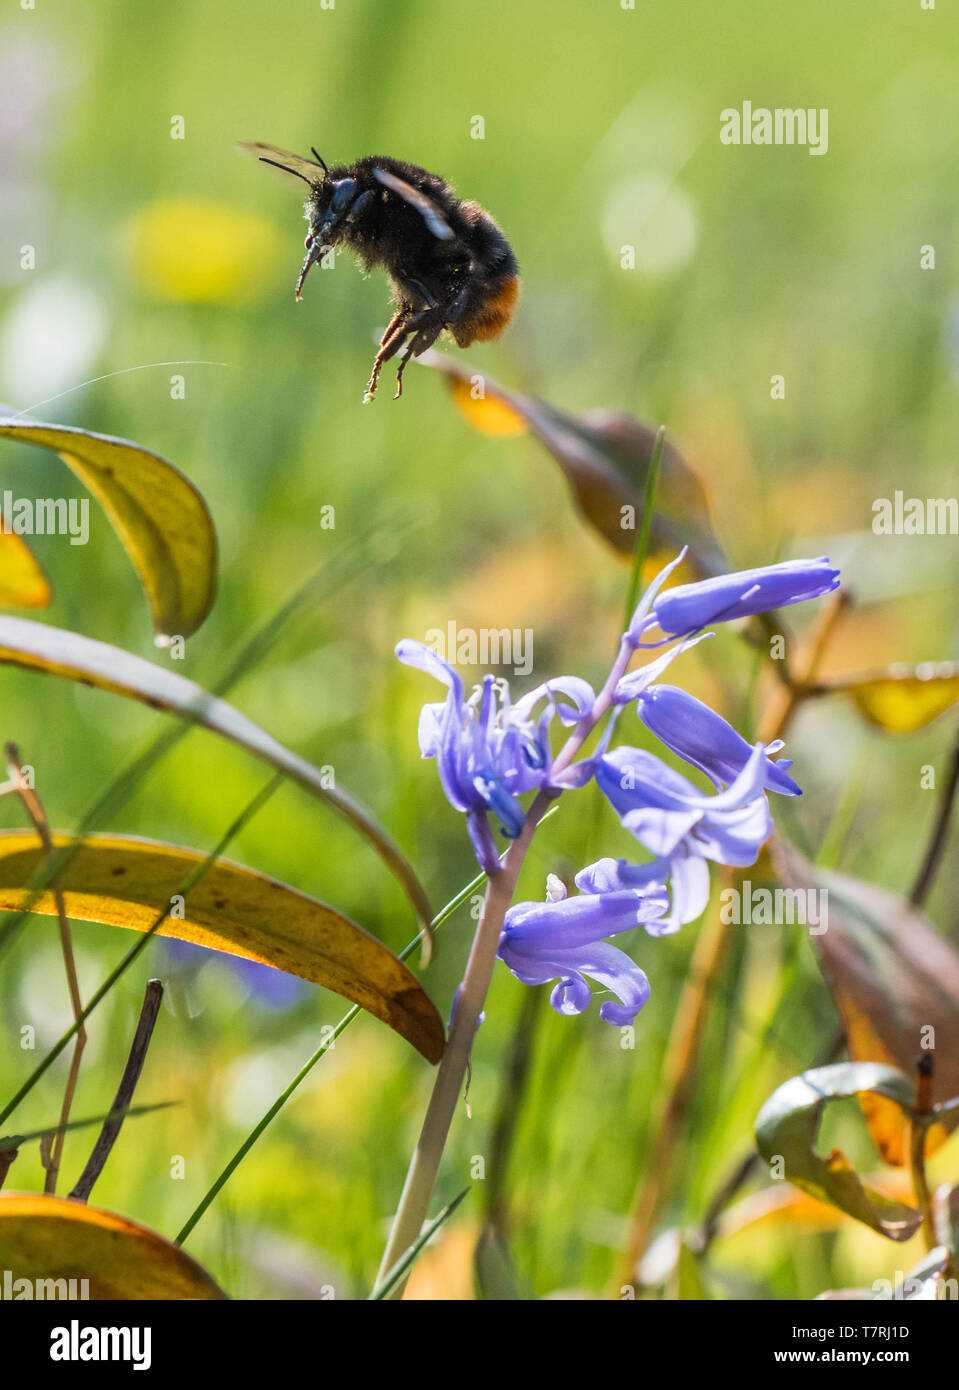 Bumble Bee pollinating a non native Spanish Bluebell. - Stock Image